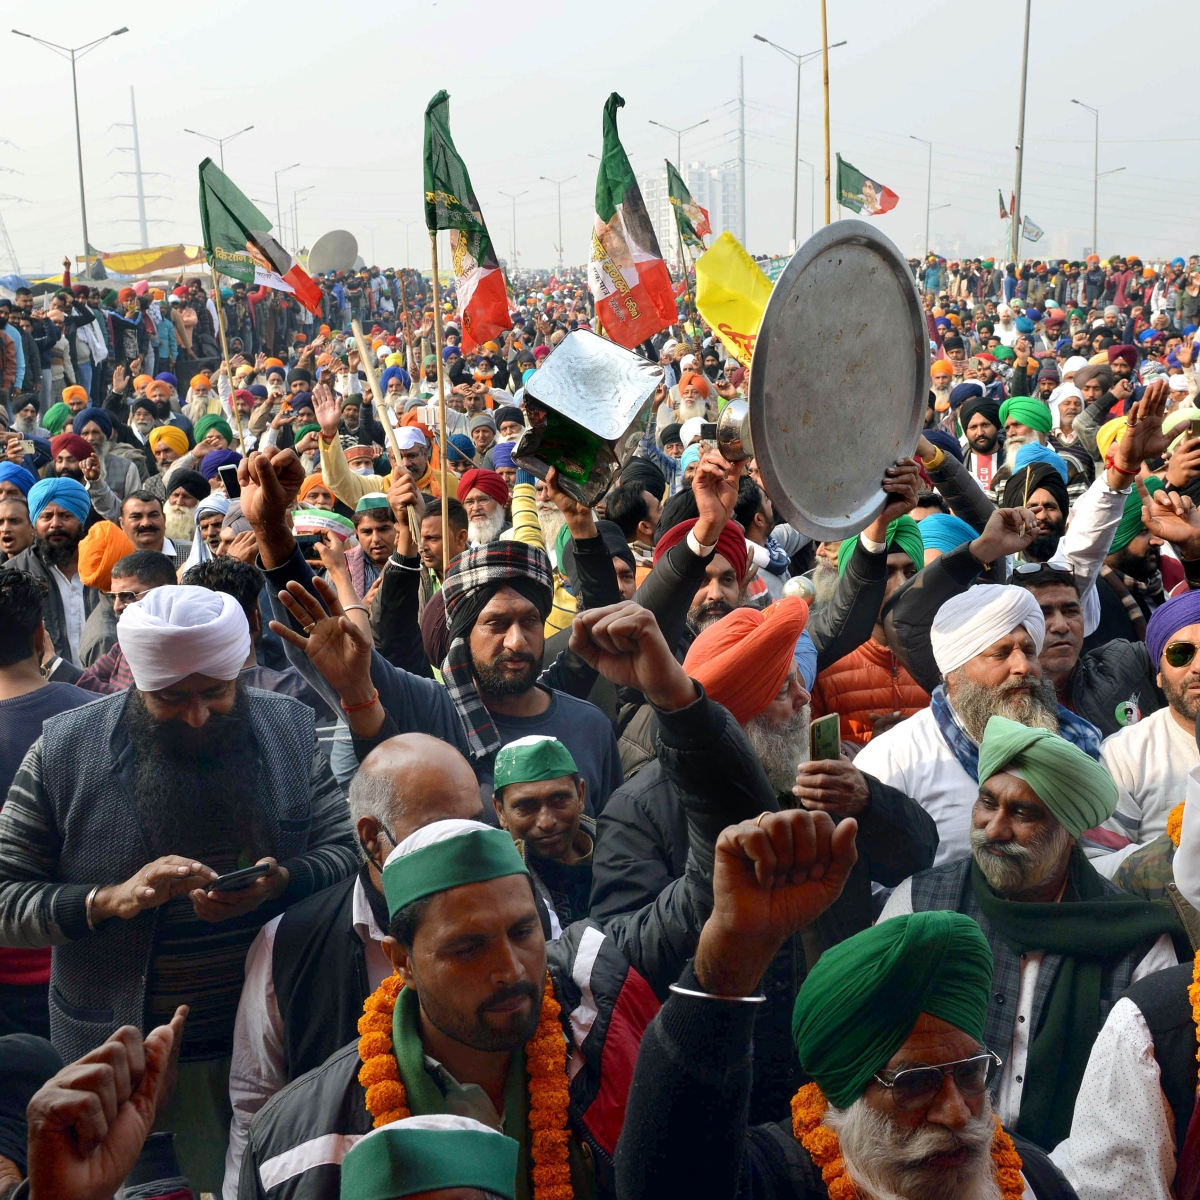 Punjab lawyer allegedly commits suicide near Delhi farmers' protest site